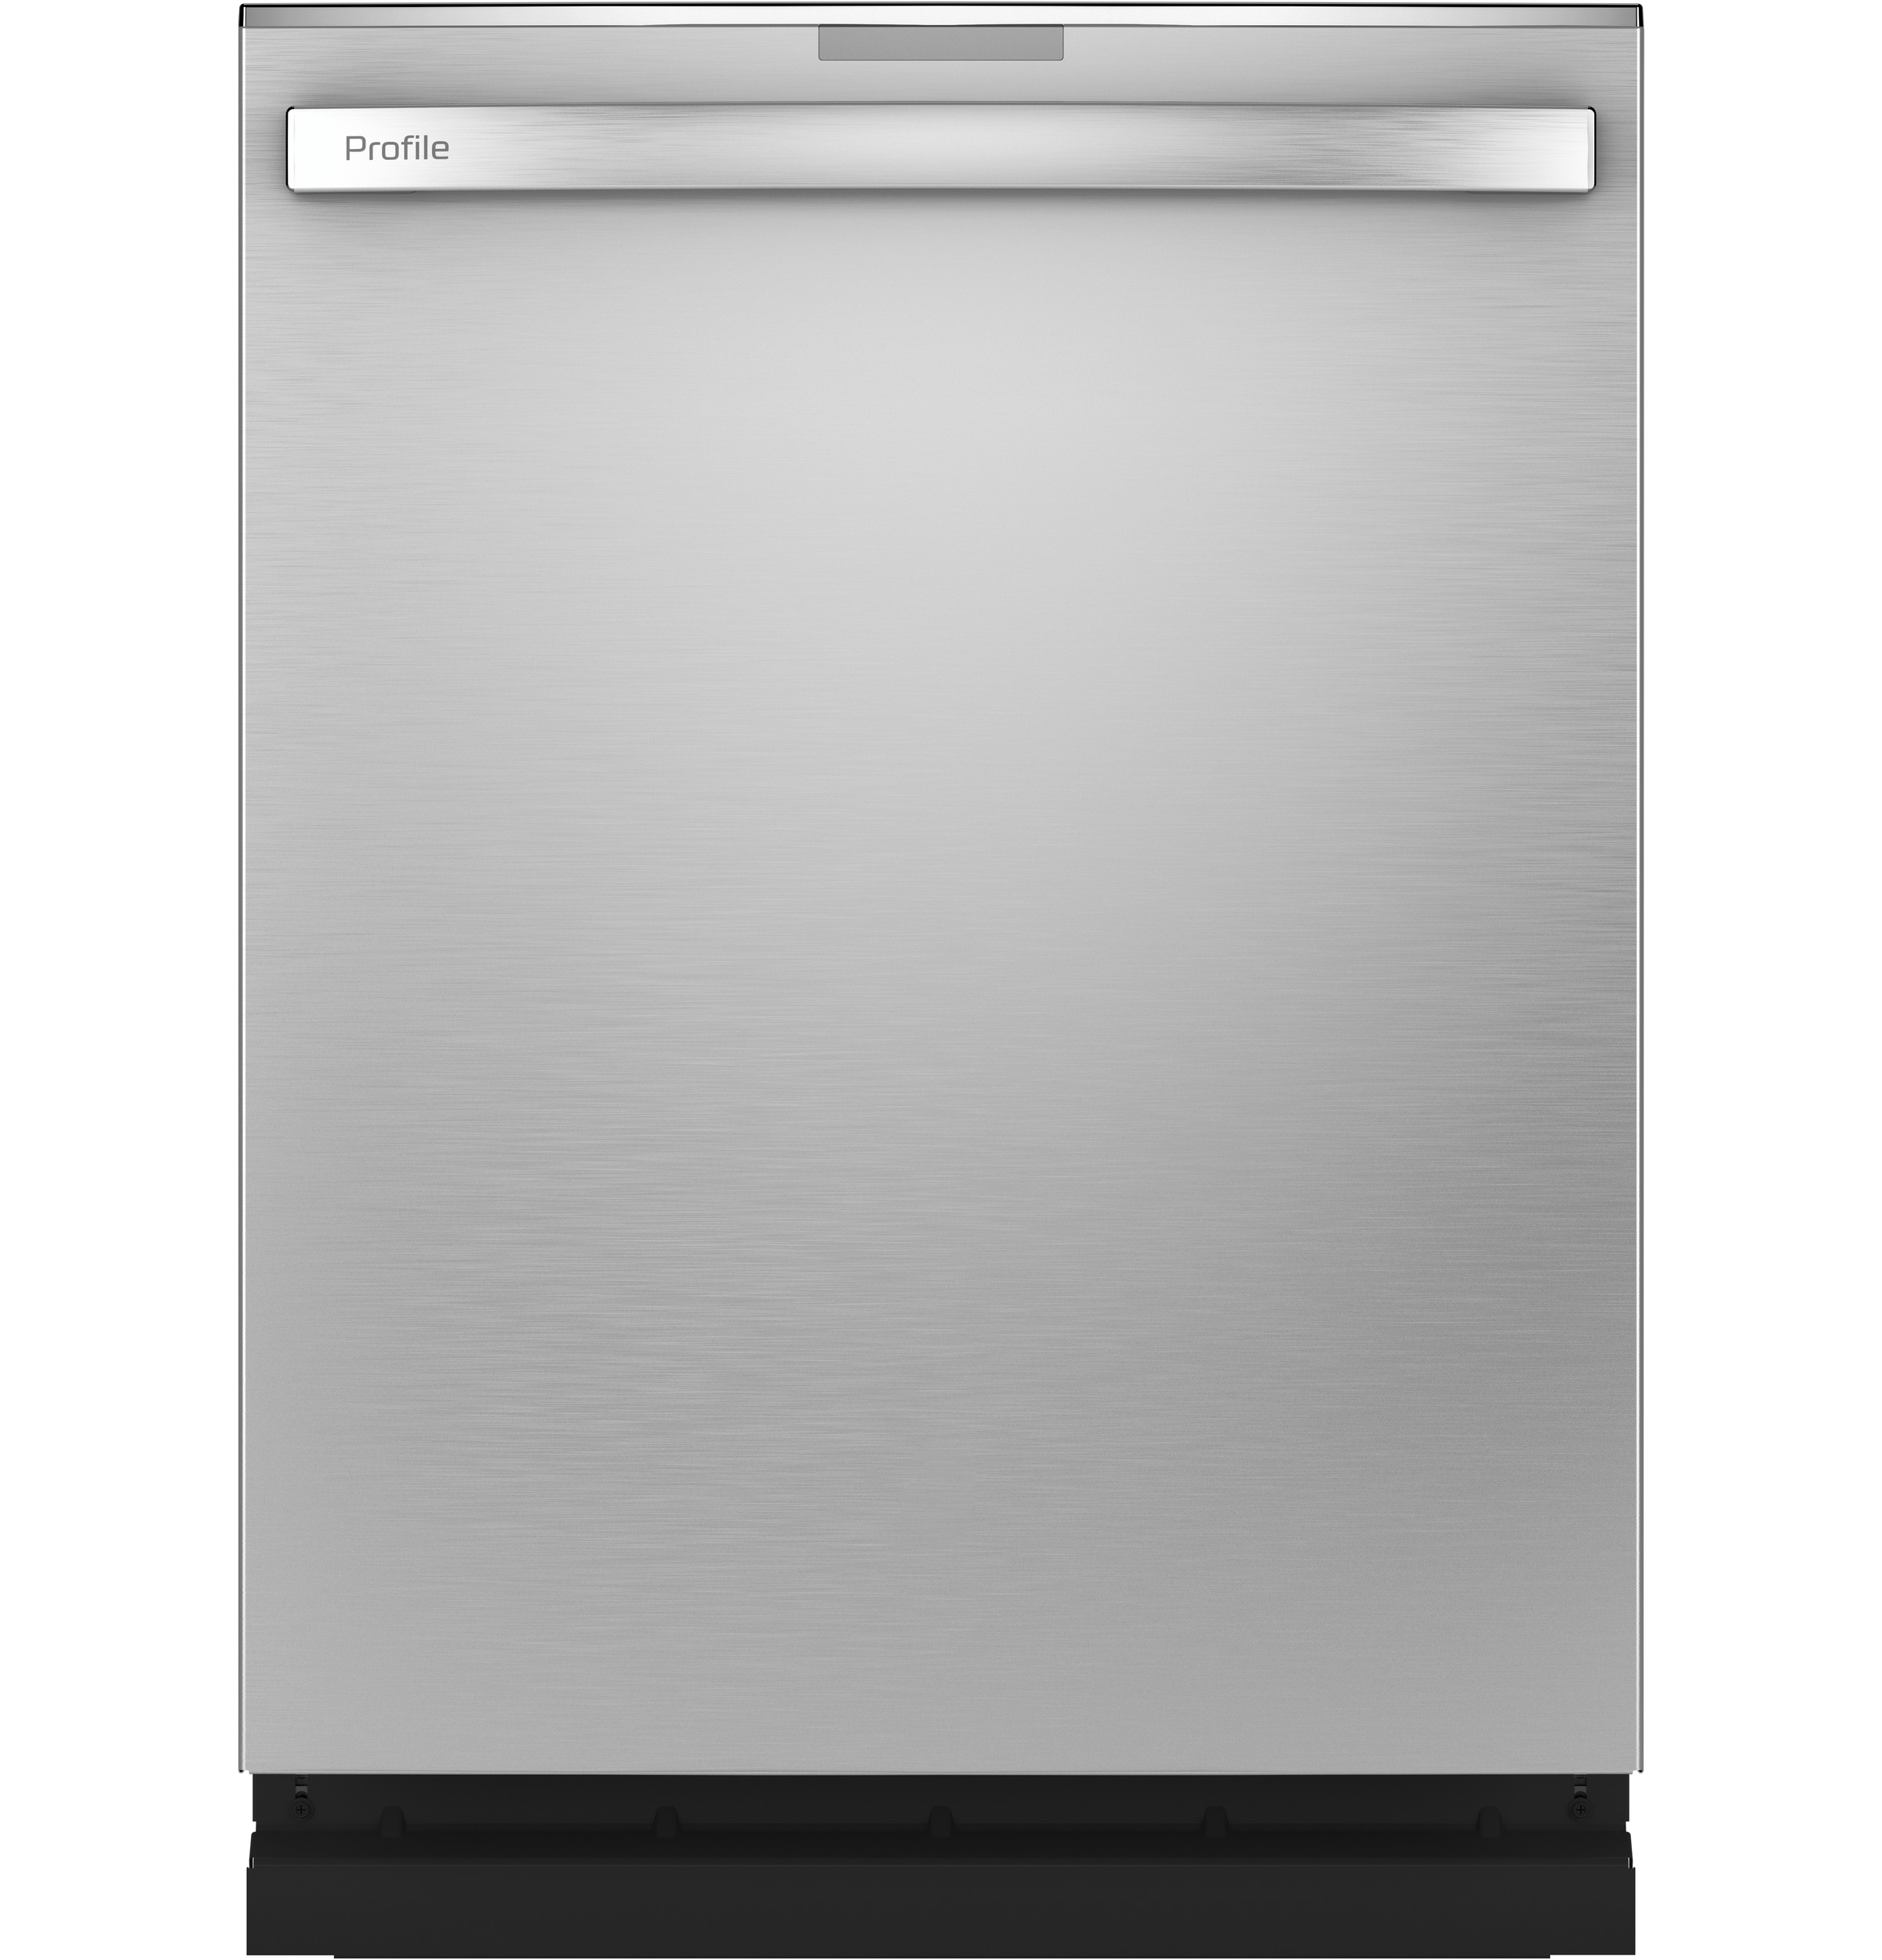 GE Appliances Wifi Connect Dishwashers